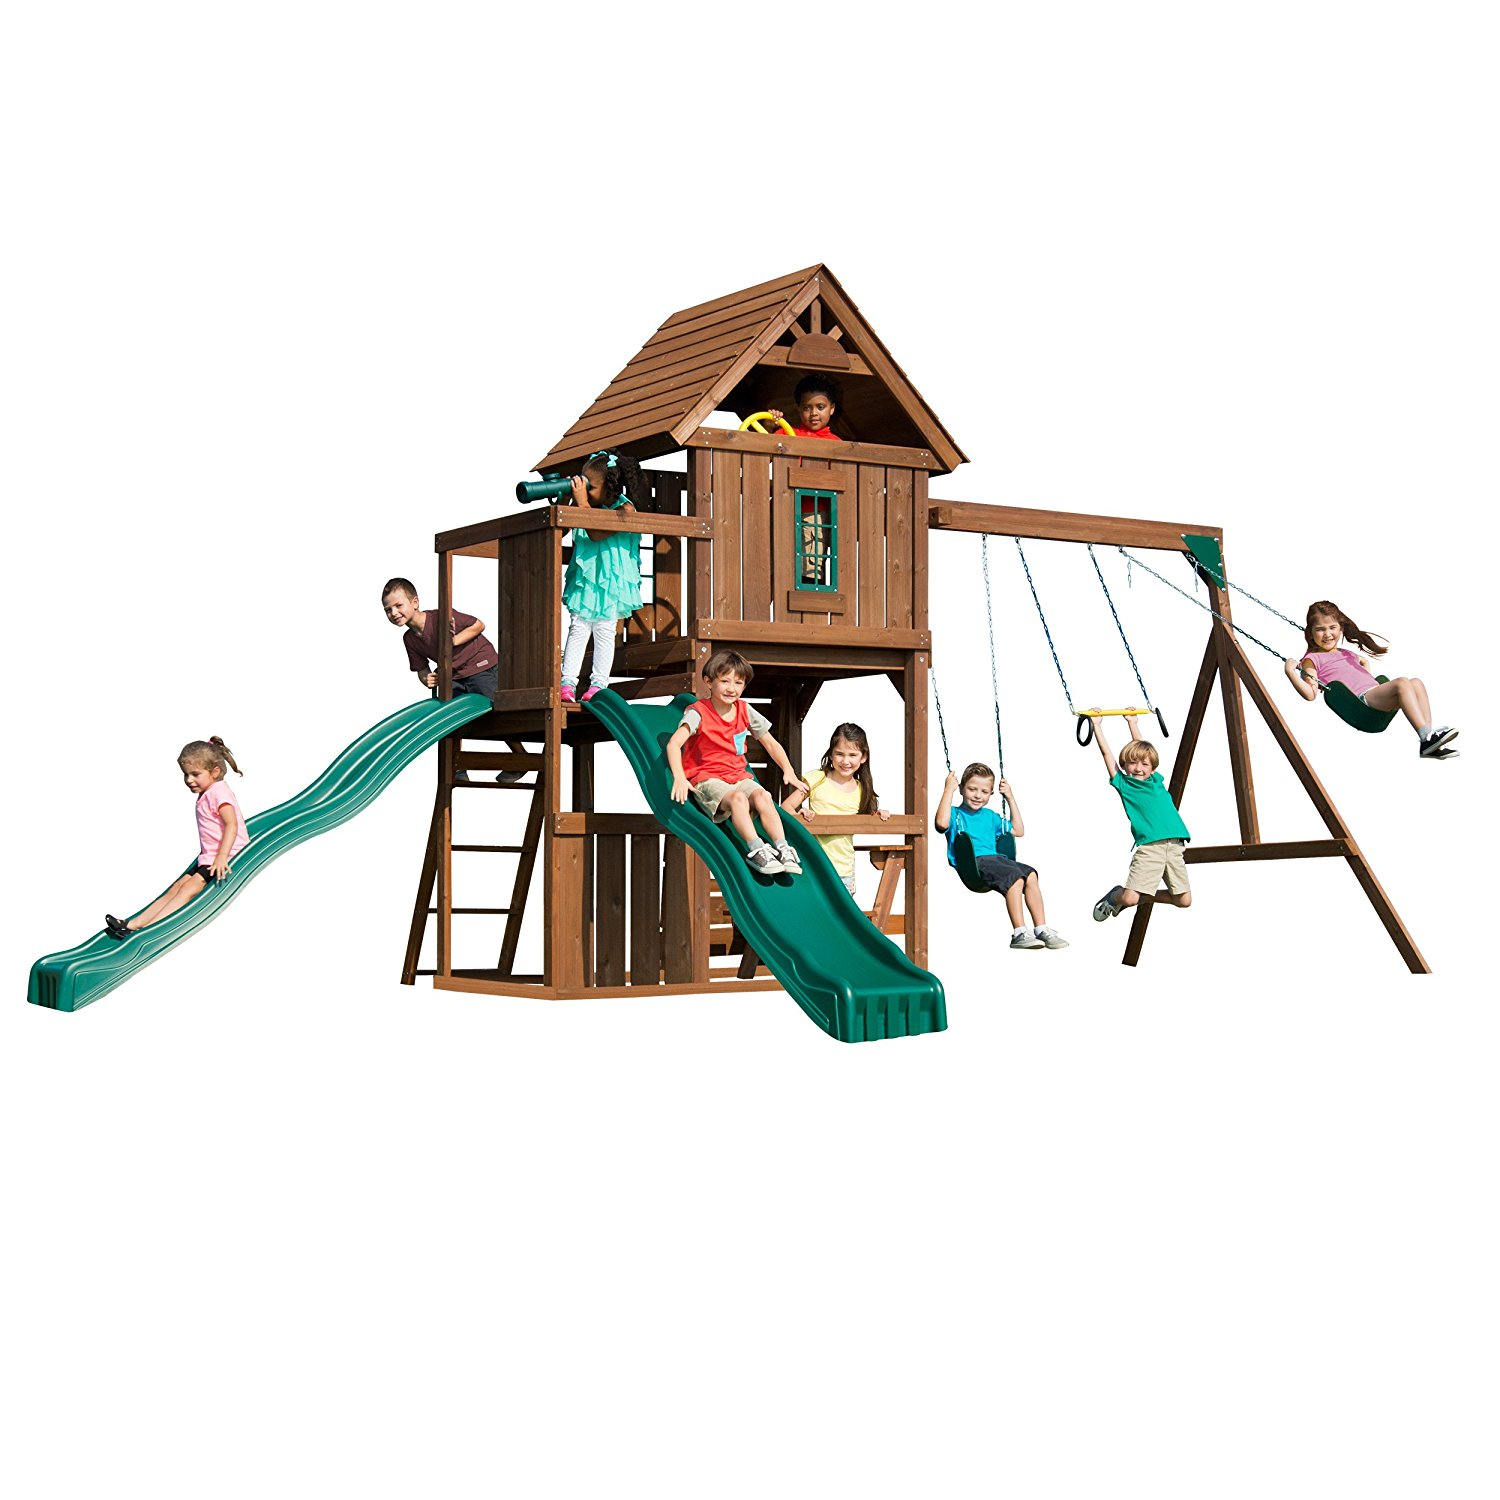 backyard swing set fabulous southampton garden playing n for outdoor play slide sets wooden wood kid design